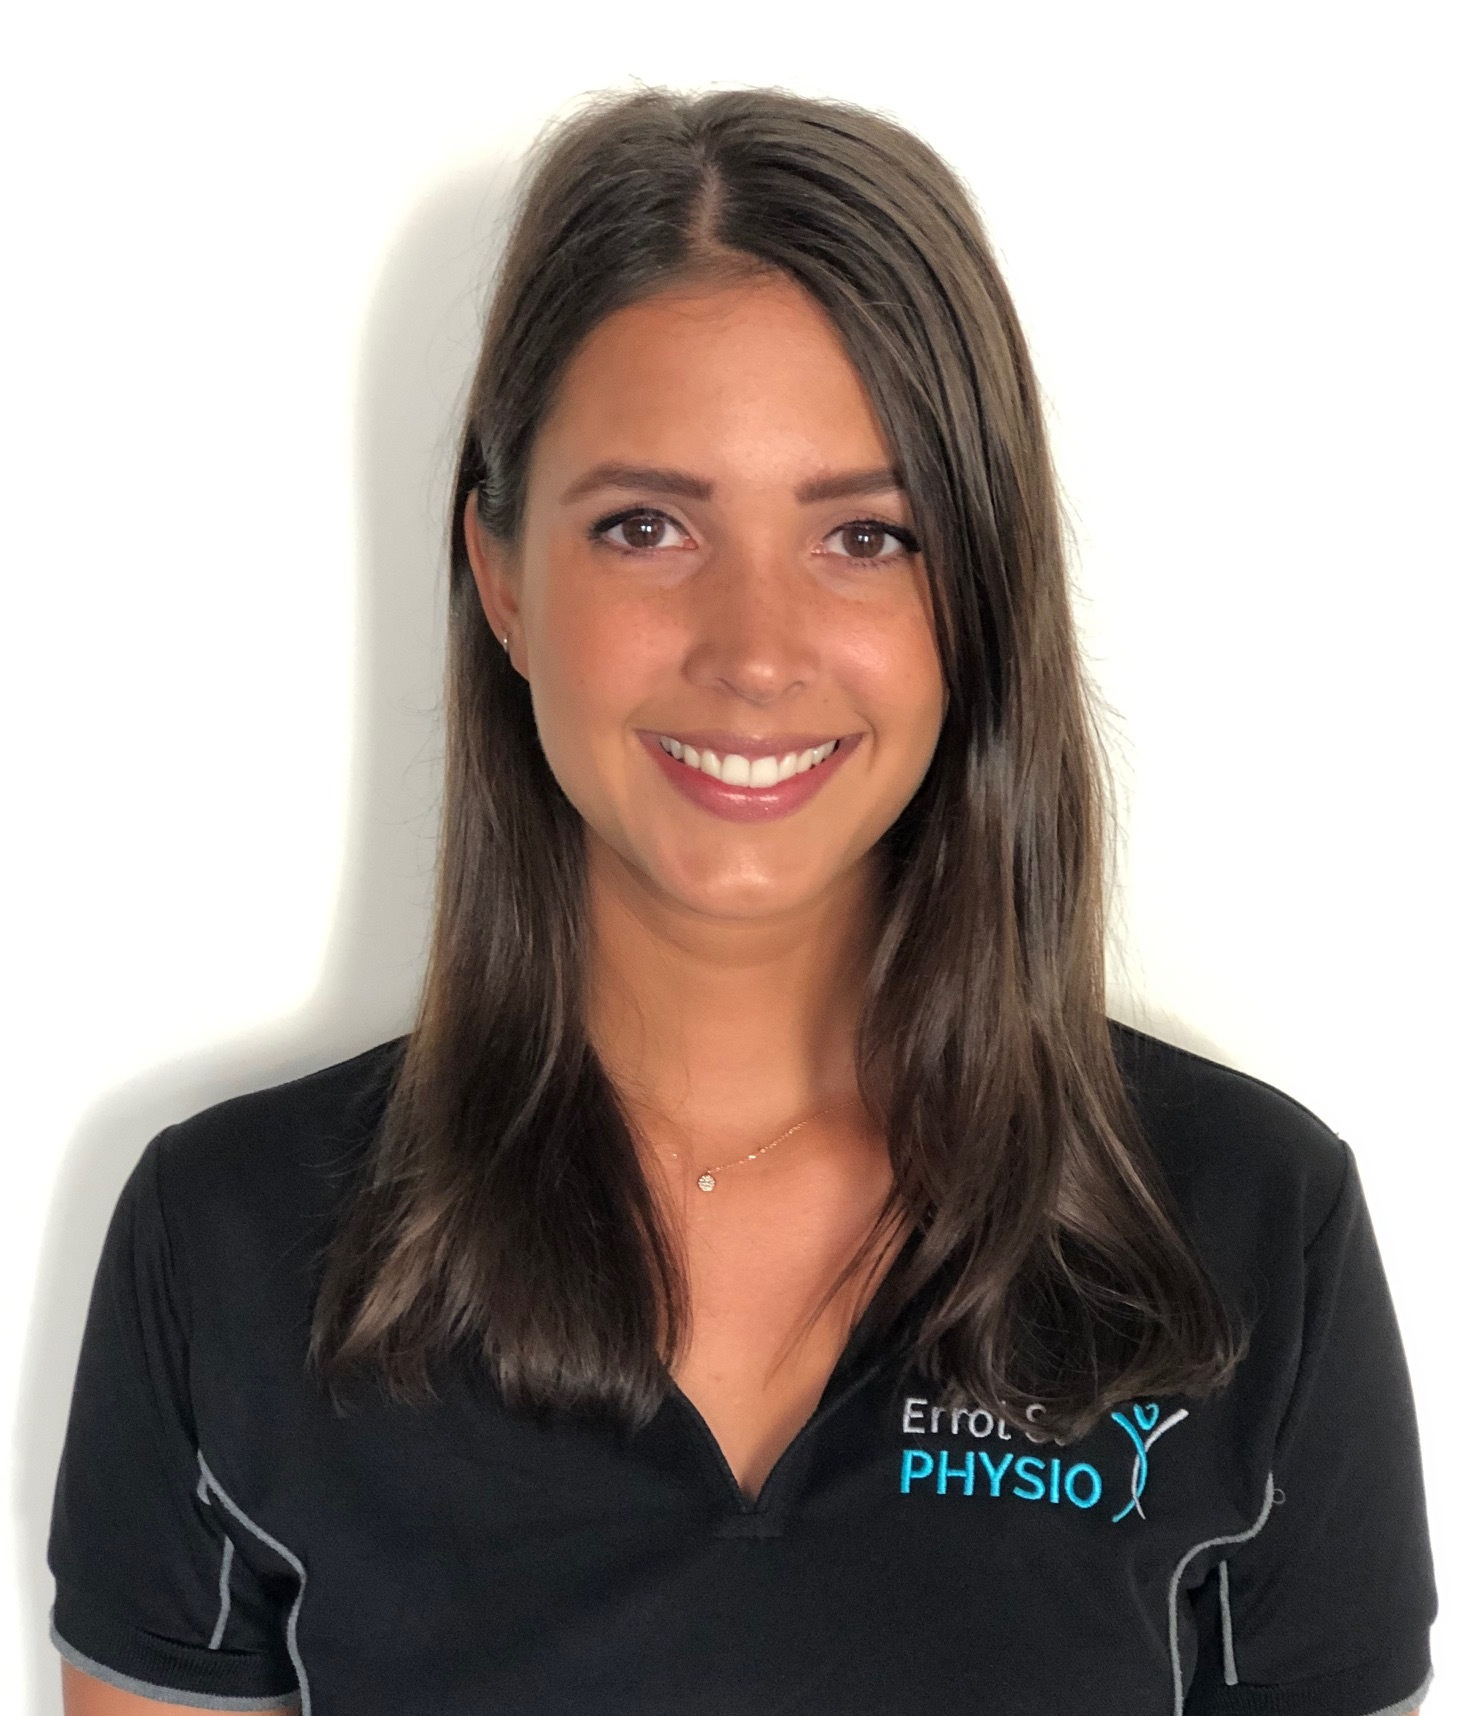 Emily Sayers - Physiotherapist